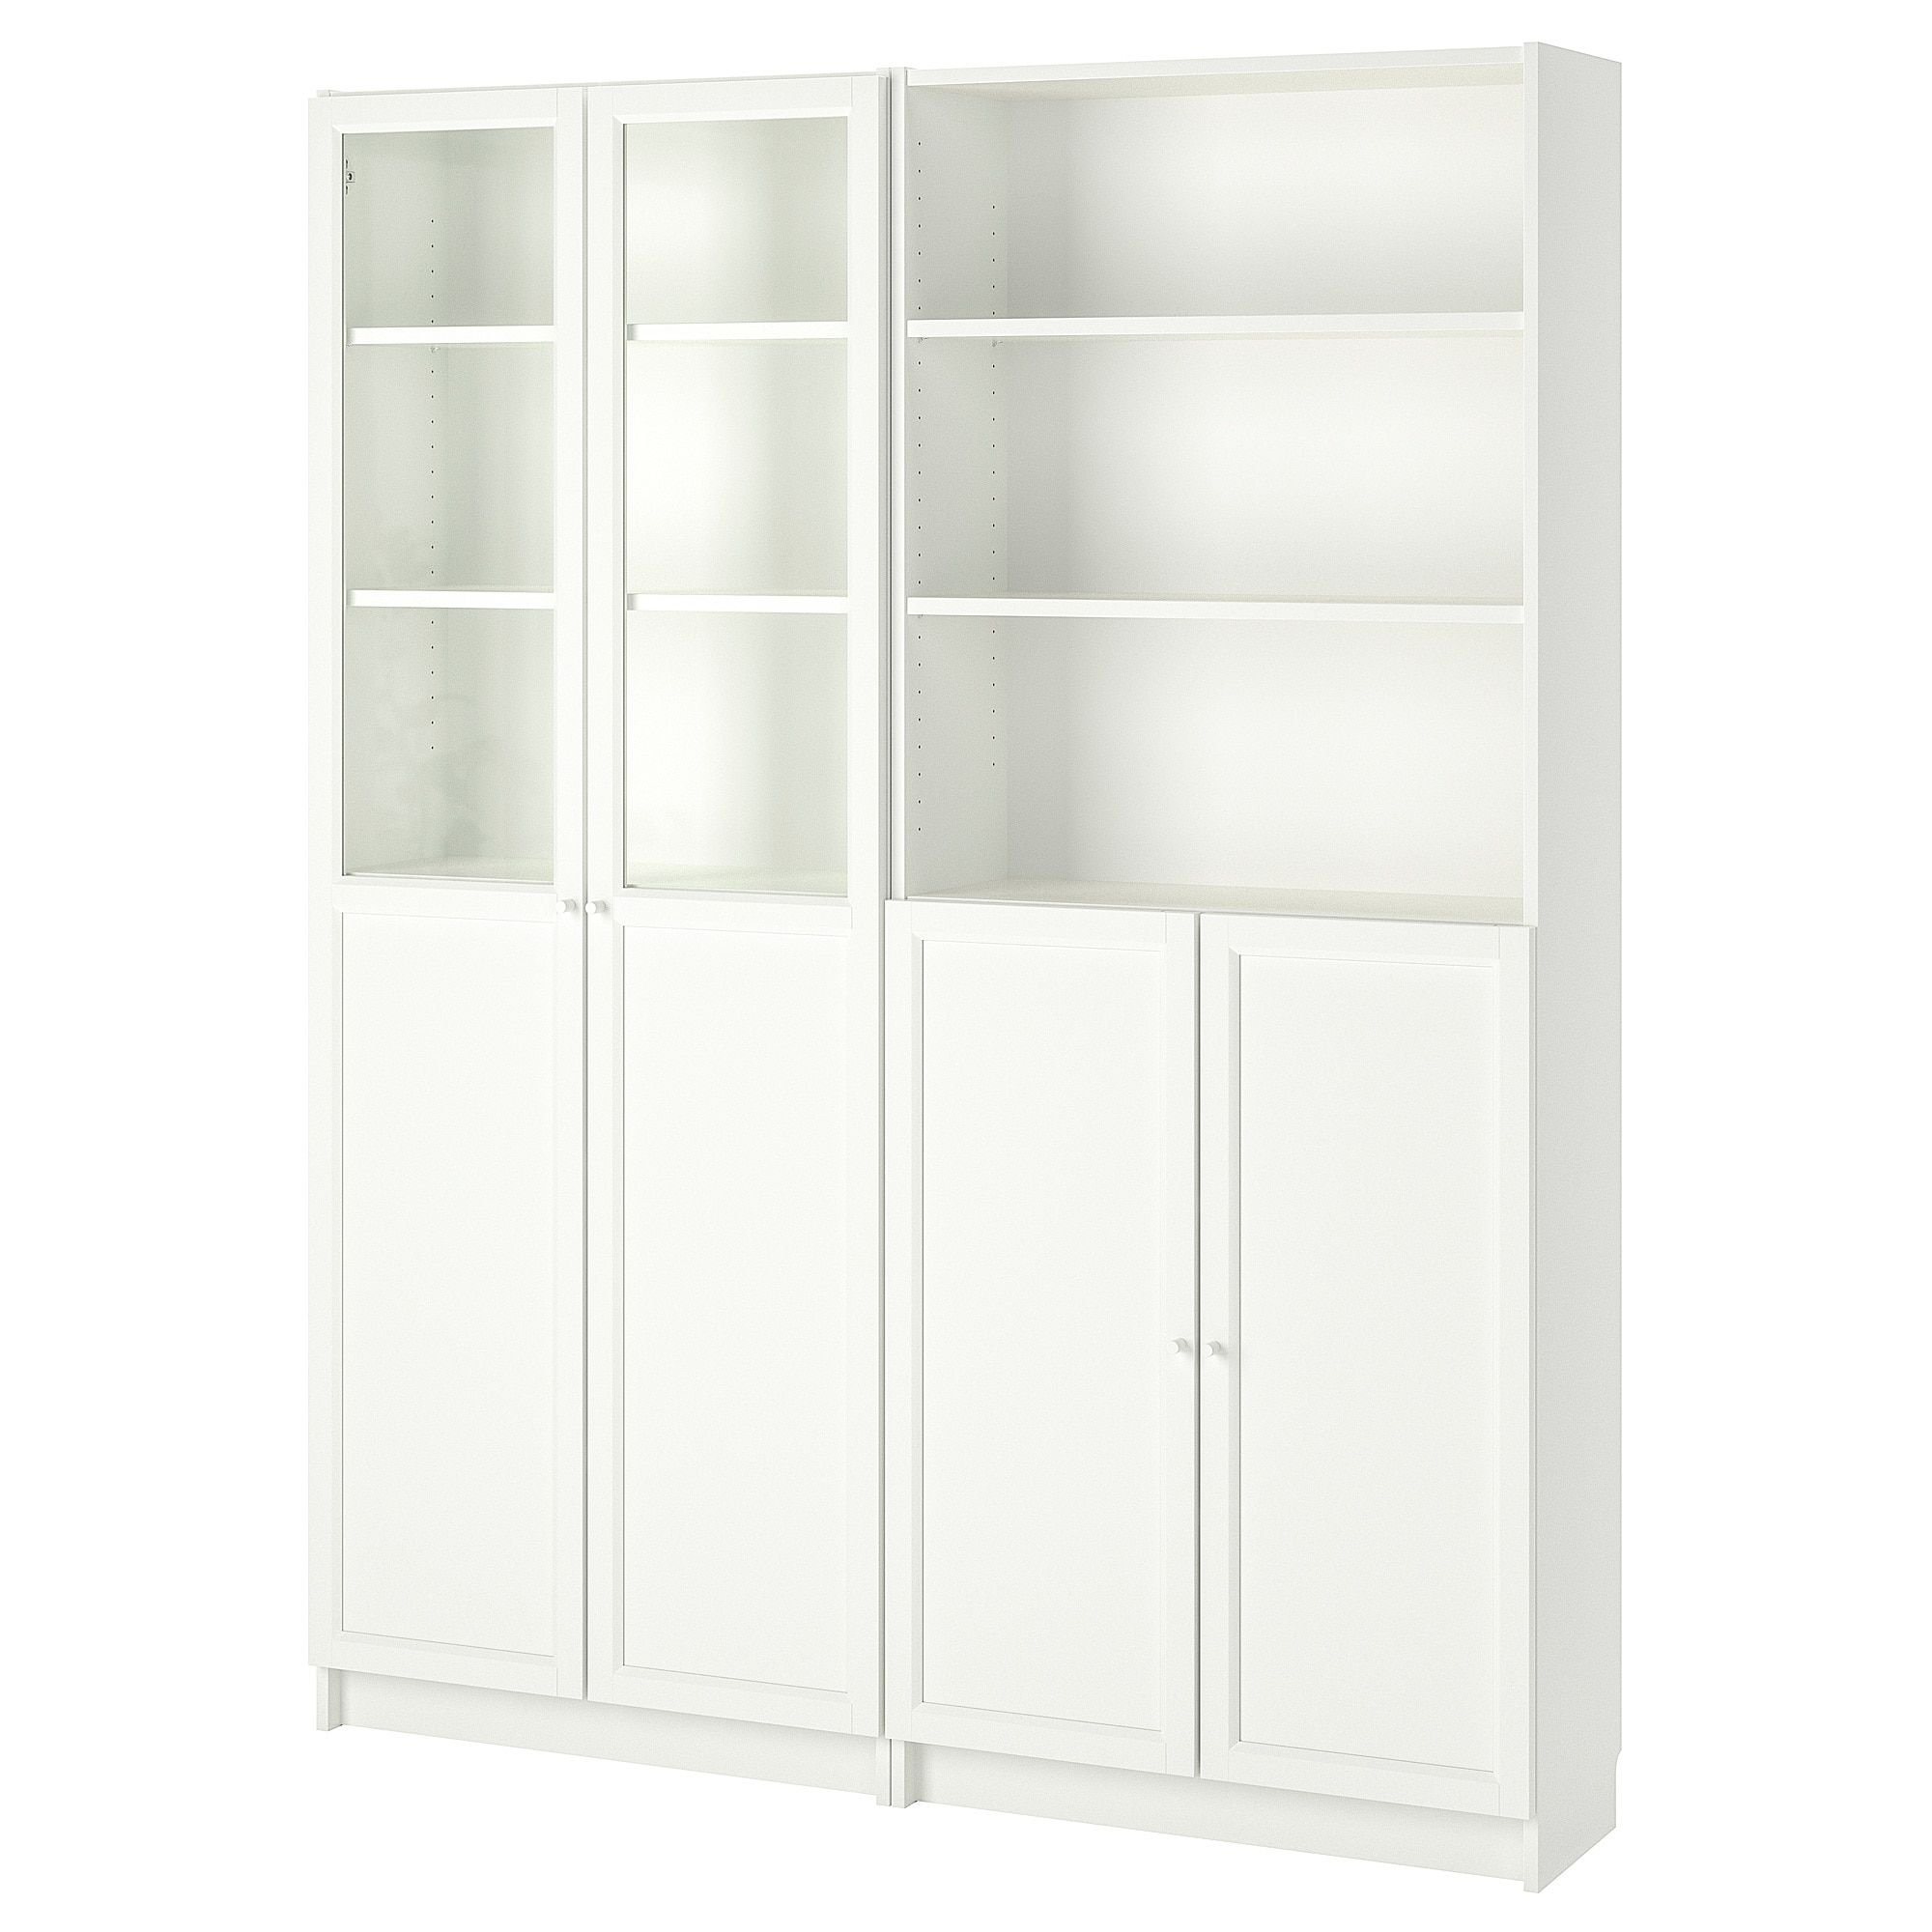 Billy Oxberg Bookcase With Panel Glass Doors White 63x11 3 4x79 1 2 Ikea Bookcase With Glass Doors Glass Cabinet Doors Shelves